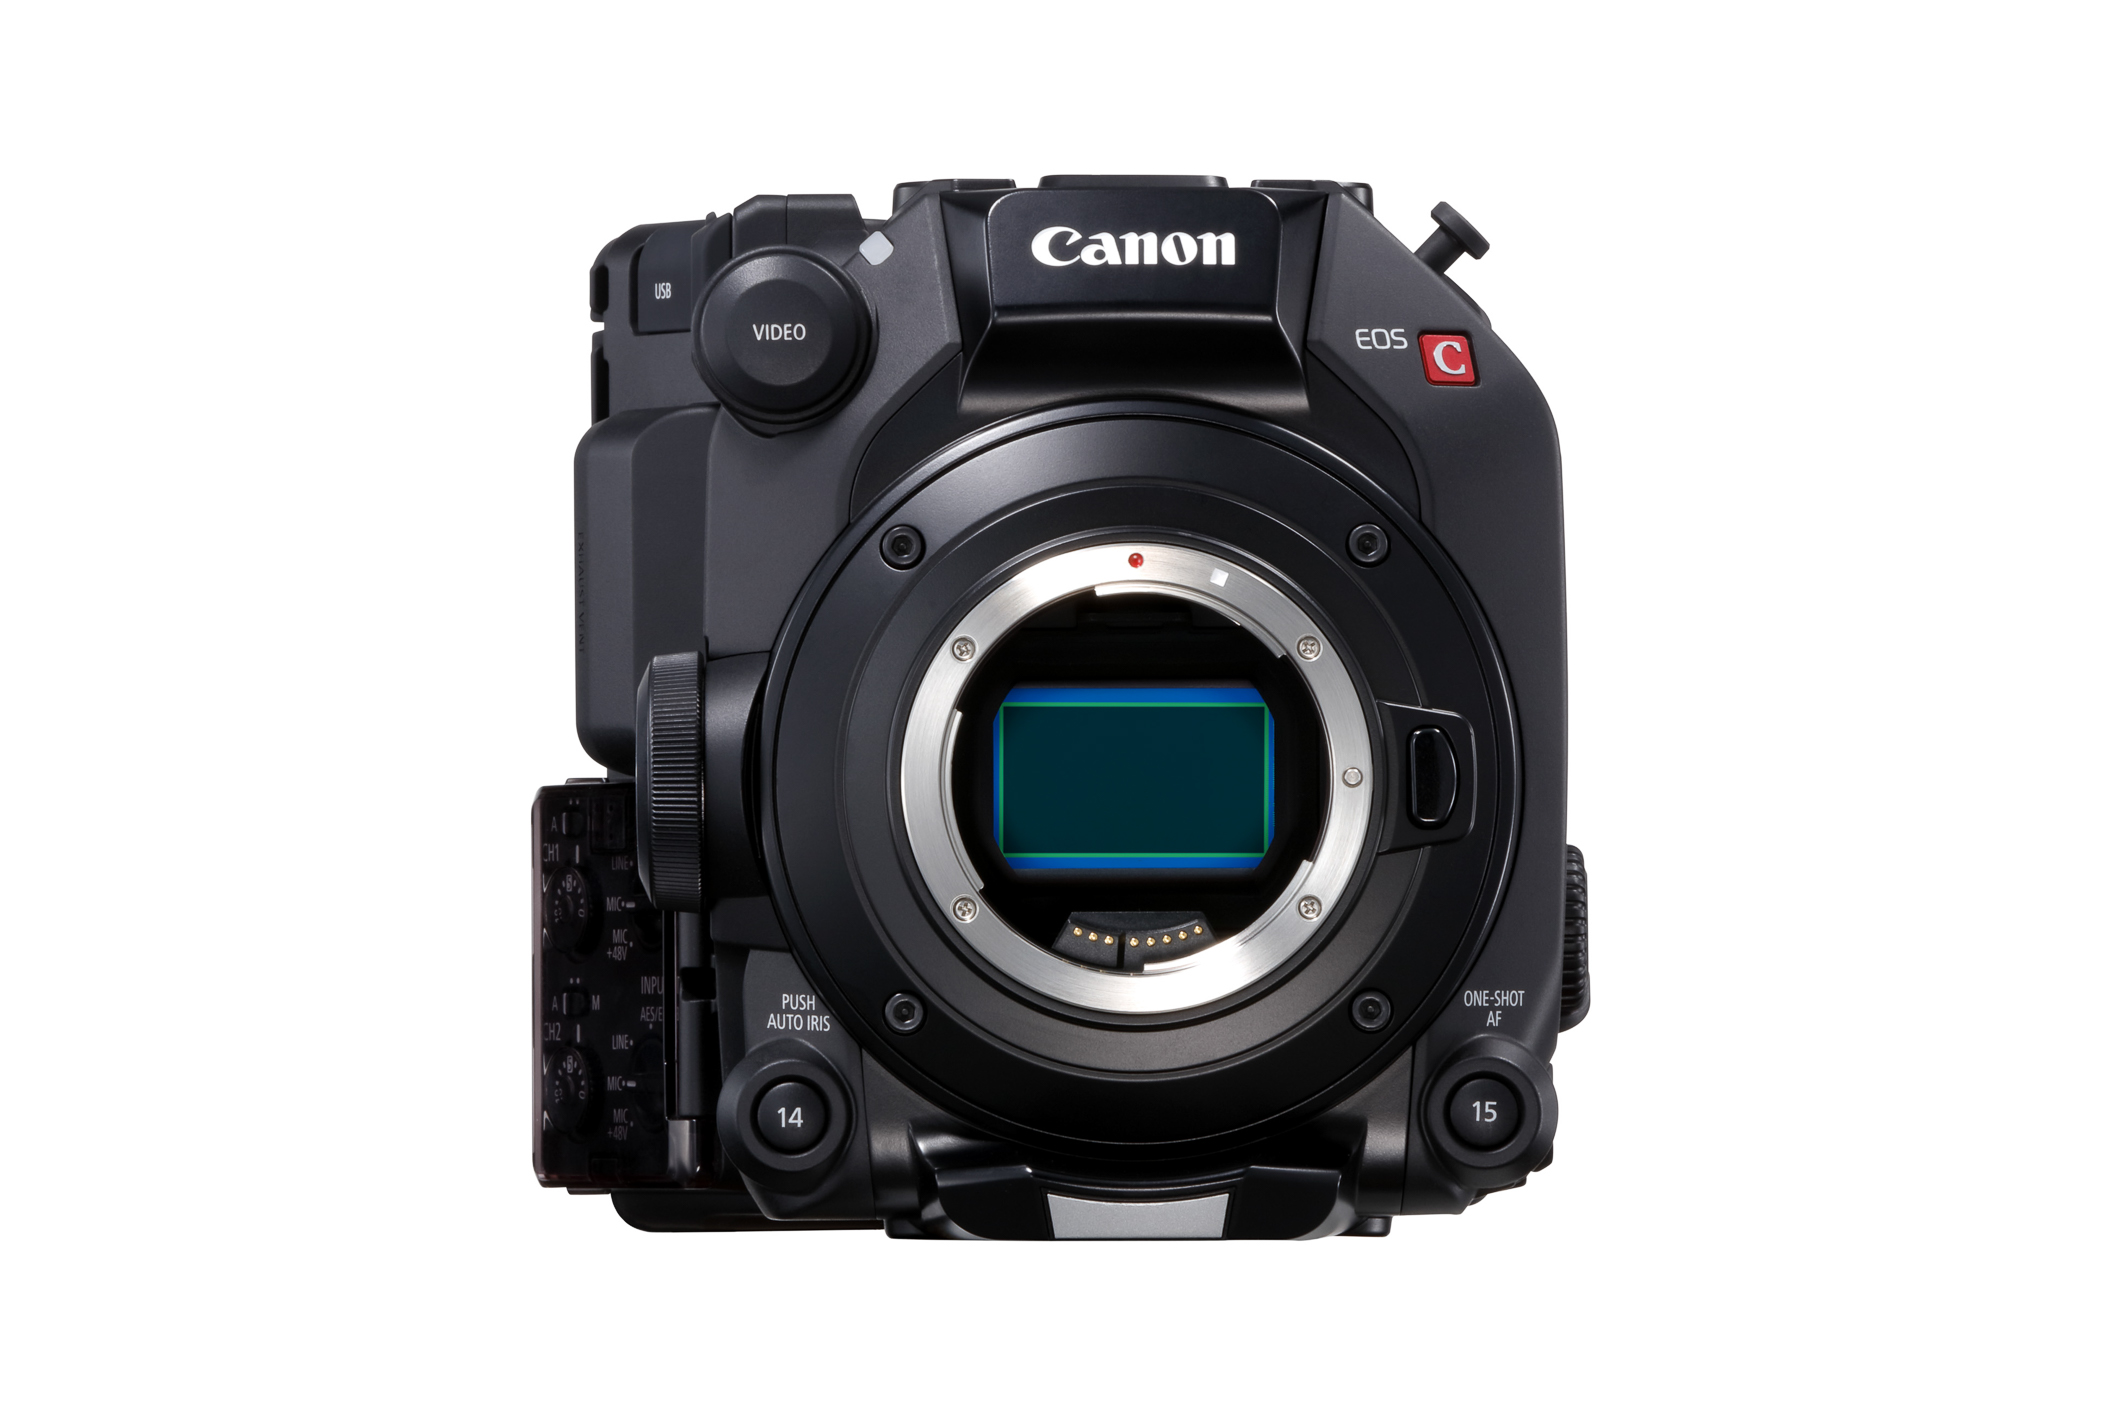 The Canon EOS C500 Mark II